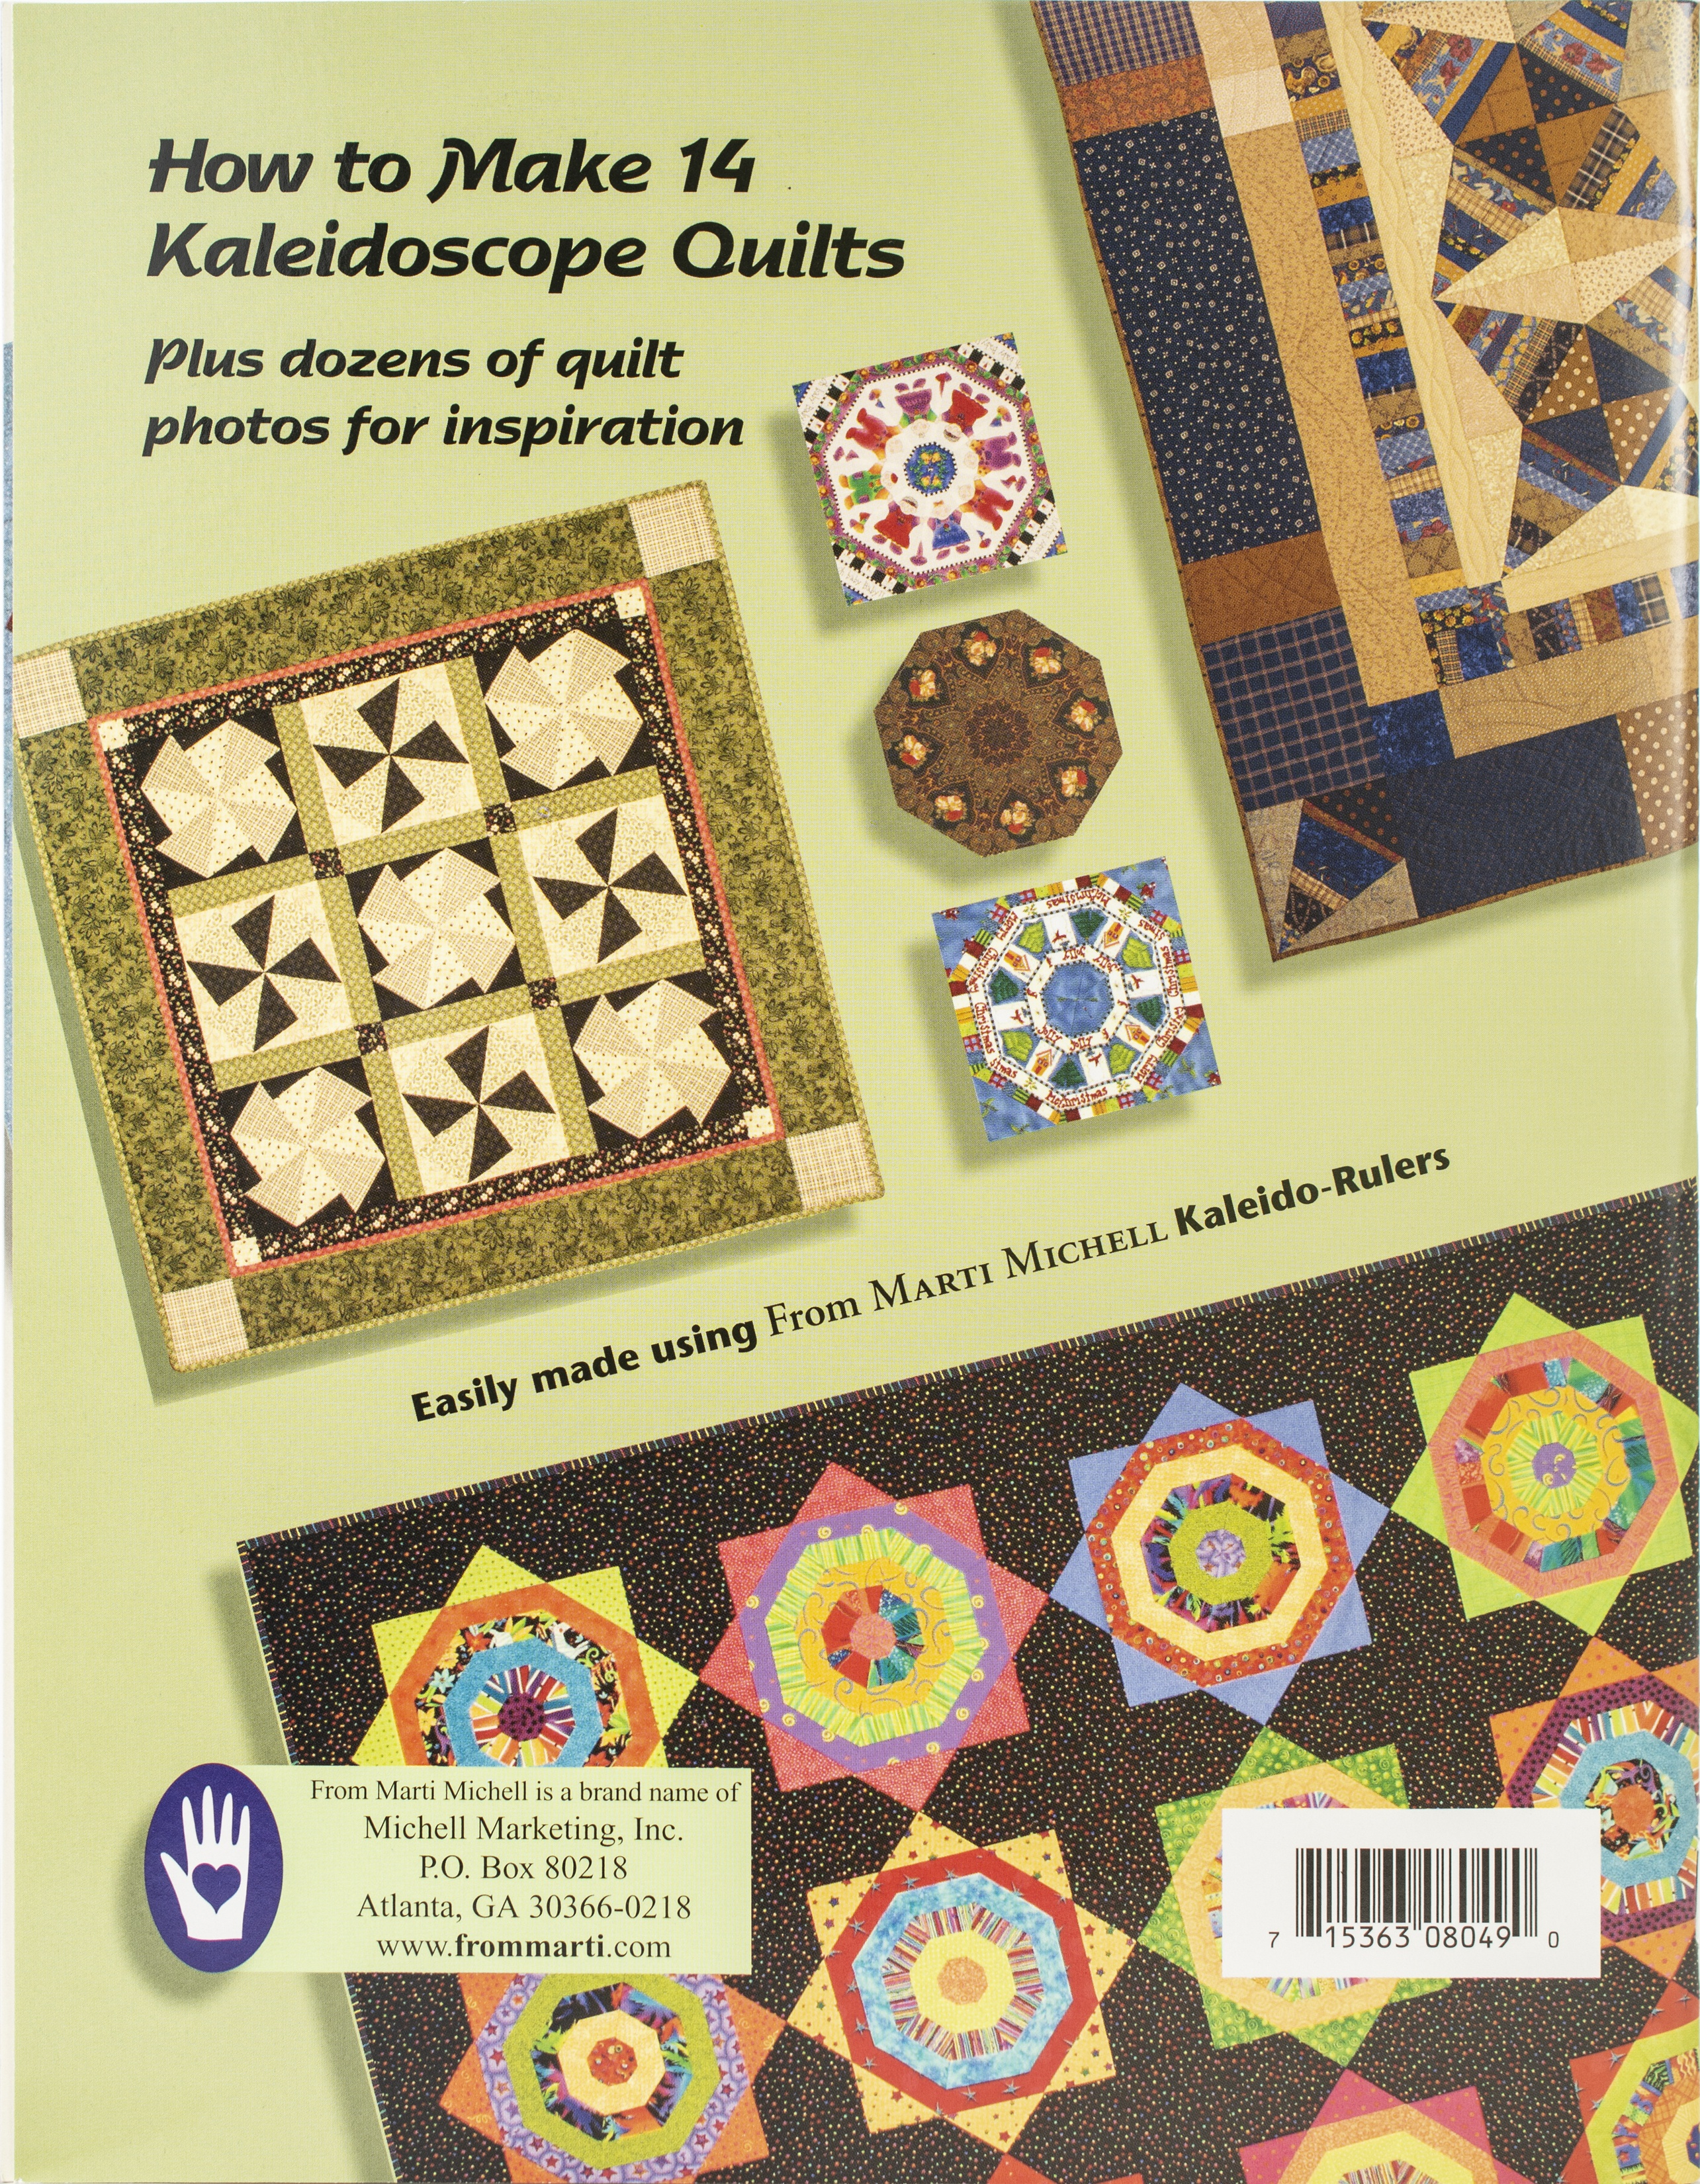 Kaleidoscope ABCs Book By Marti Michell-